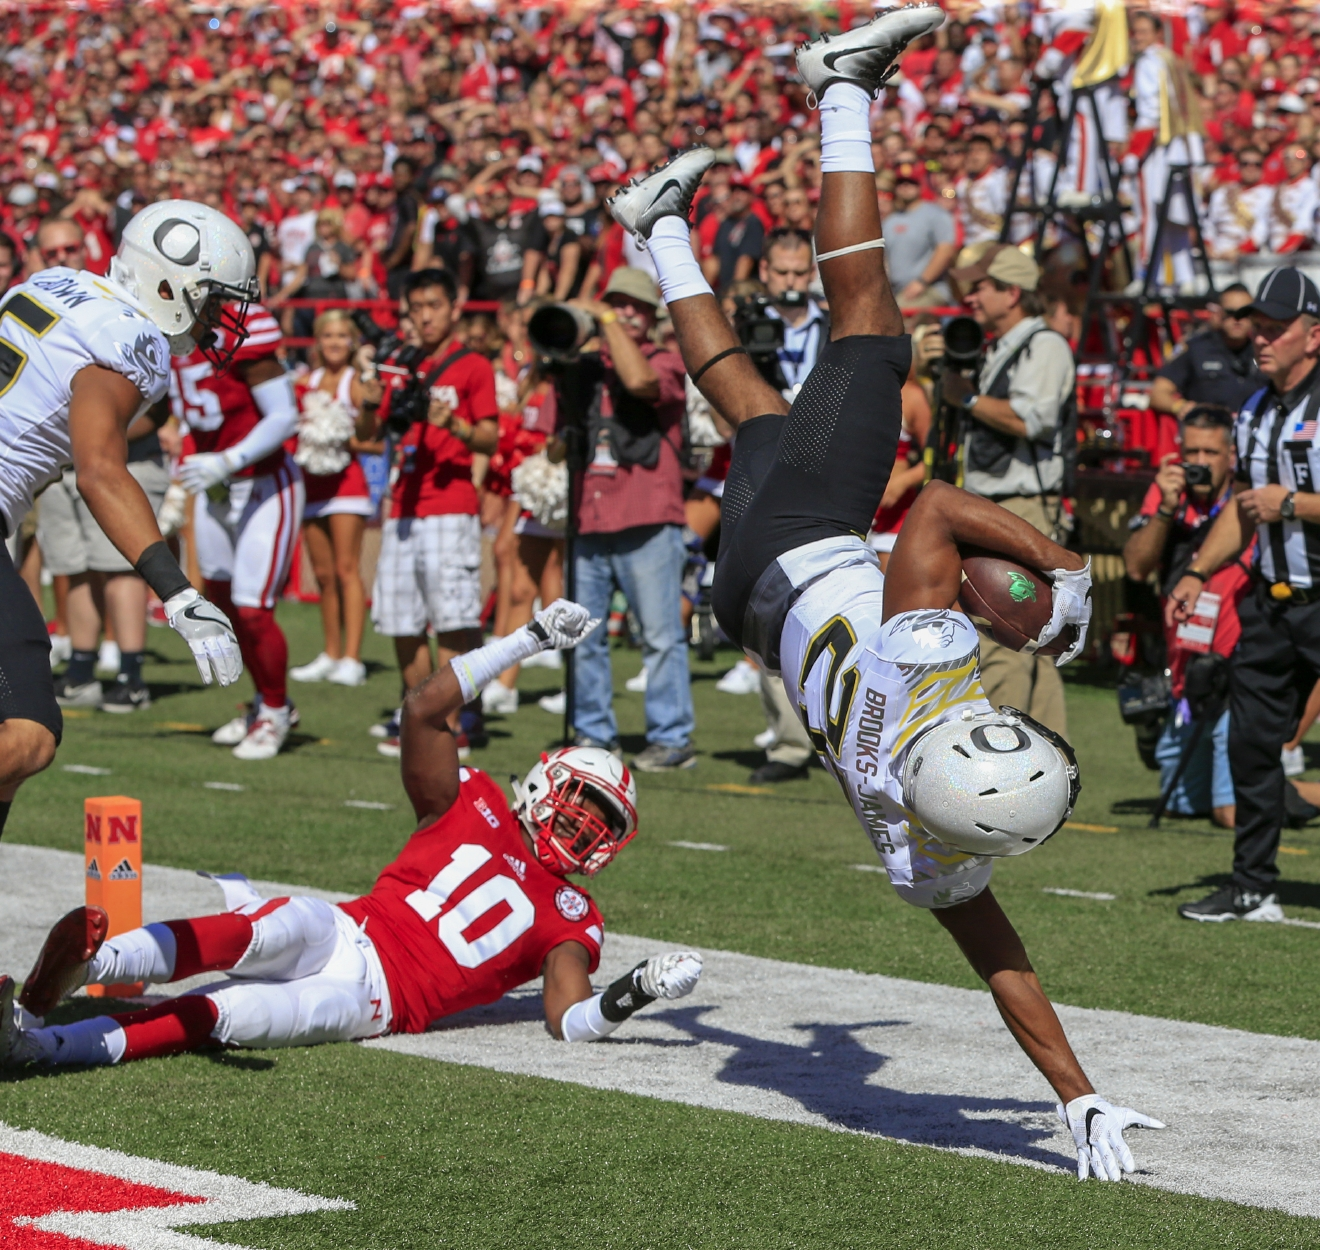 Oregon running back Tony Brooks-James (20) scores a touchdown over Nebraska cornerback Joshua Kalu (10) during the first half of an NCAA college football game in Lincoln, Neb., Saturday, Sept. 17, 2016. (AP Photo/Nati Harnik)